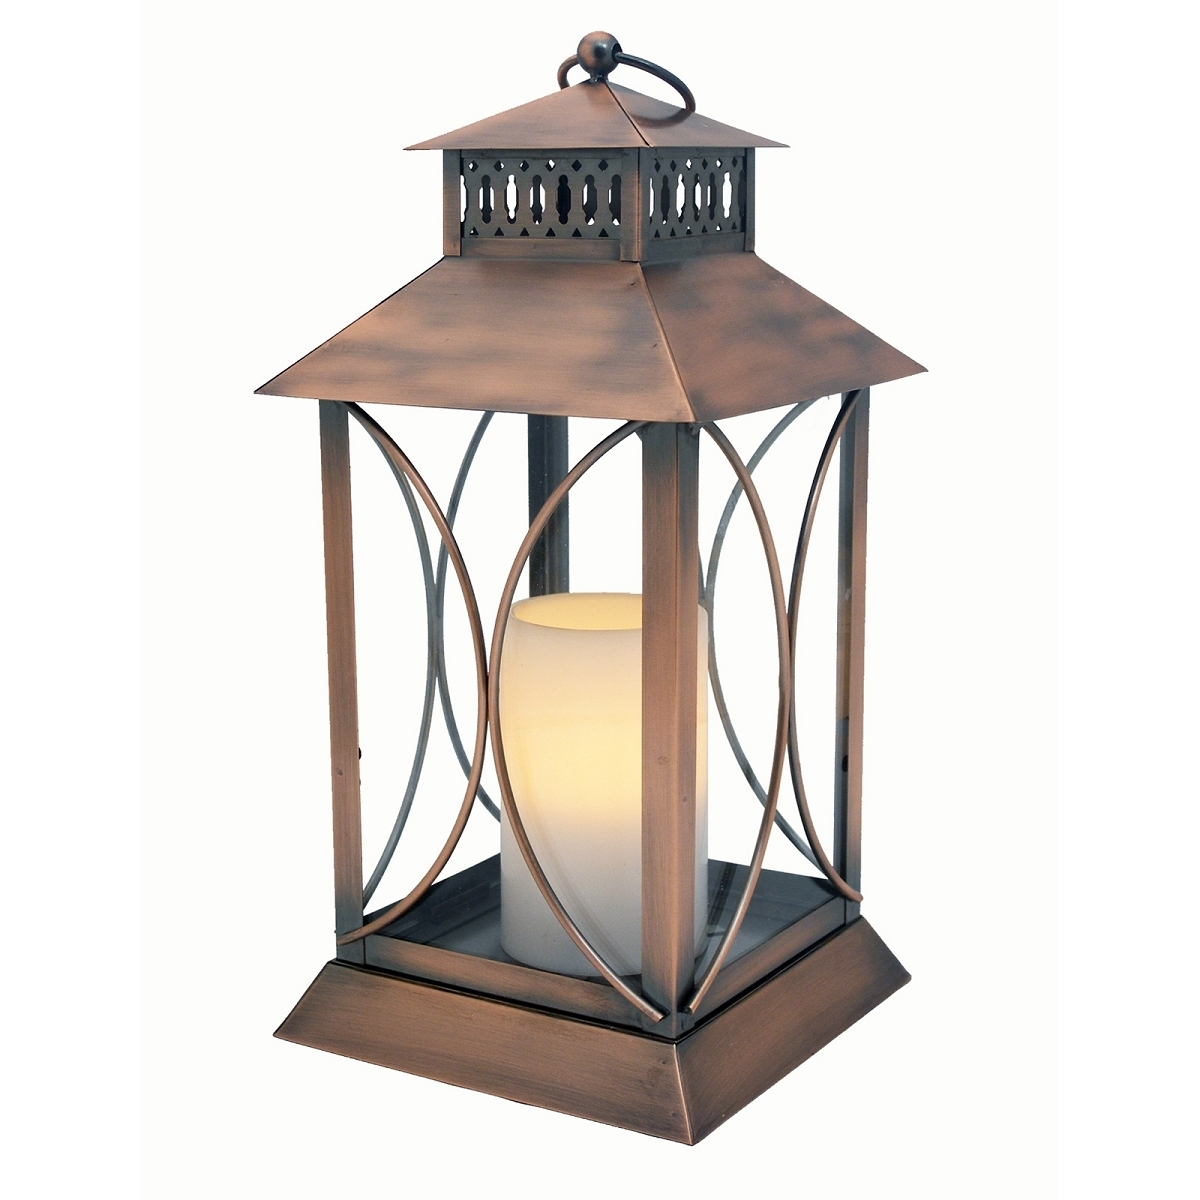 Neuporte Flameless Candle Lantern With Timer Indoor Outdoor pertaining to Indoor Outdoor Lanterns (Image 16 of 20)